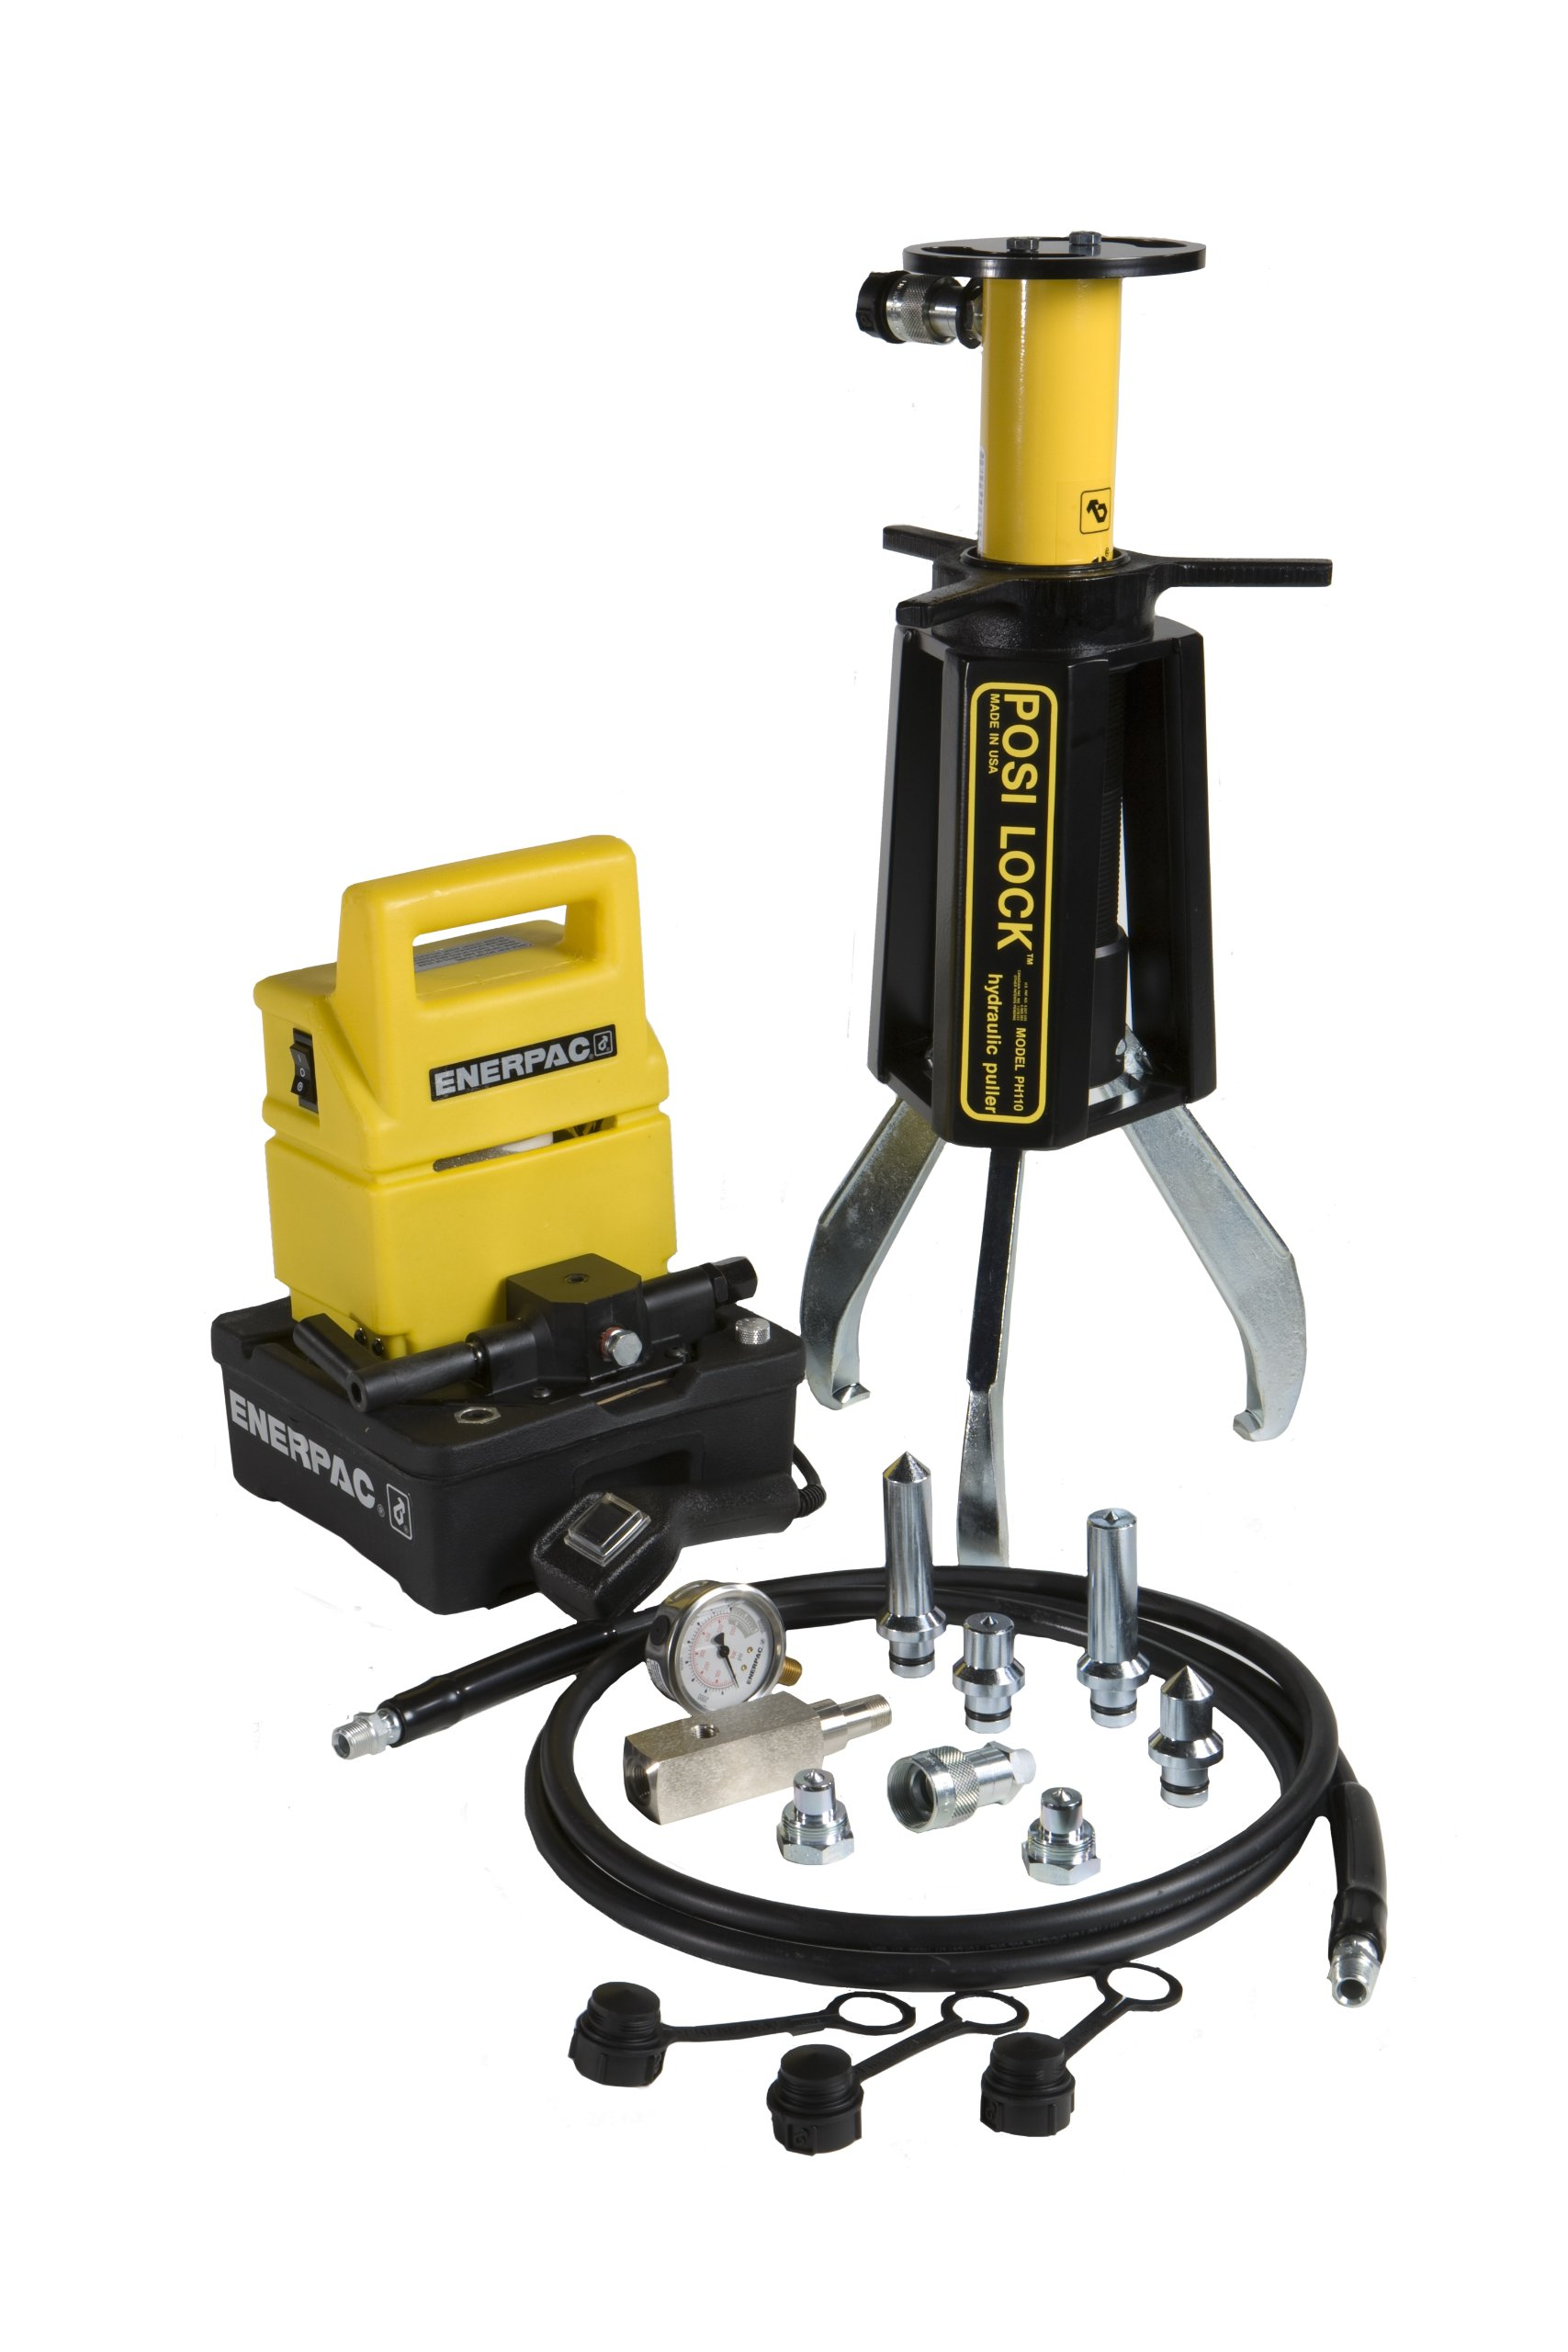 Posi Lock PH-110 External Puller, 3jaw, 15 ton capacity, 10'' Reach, 1''-15'' Spread Range with an electric pump